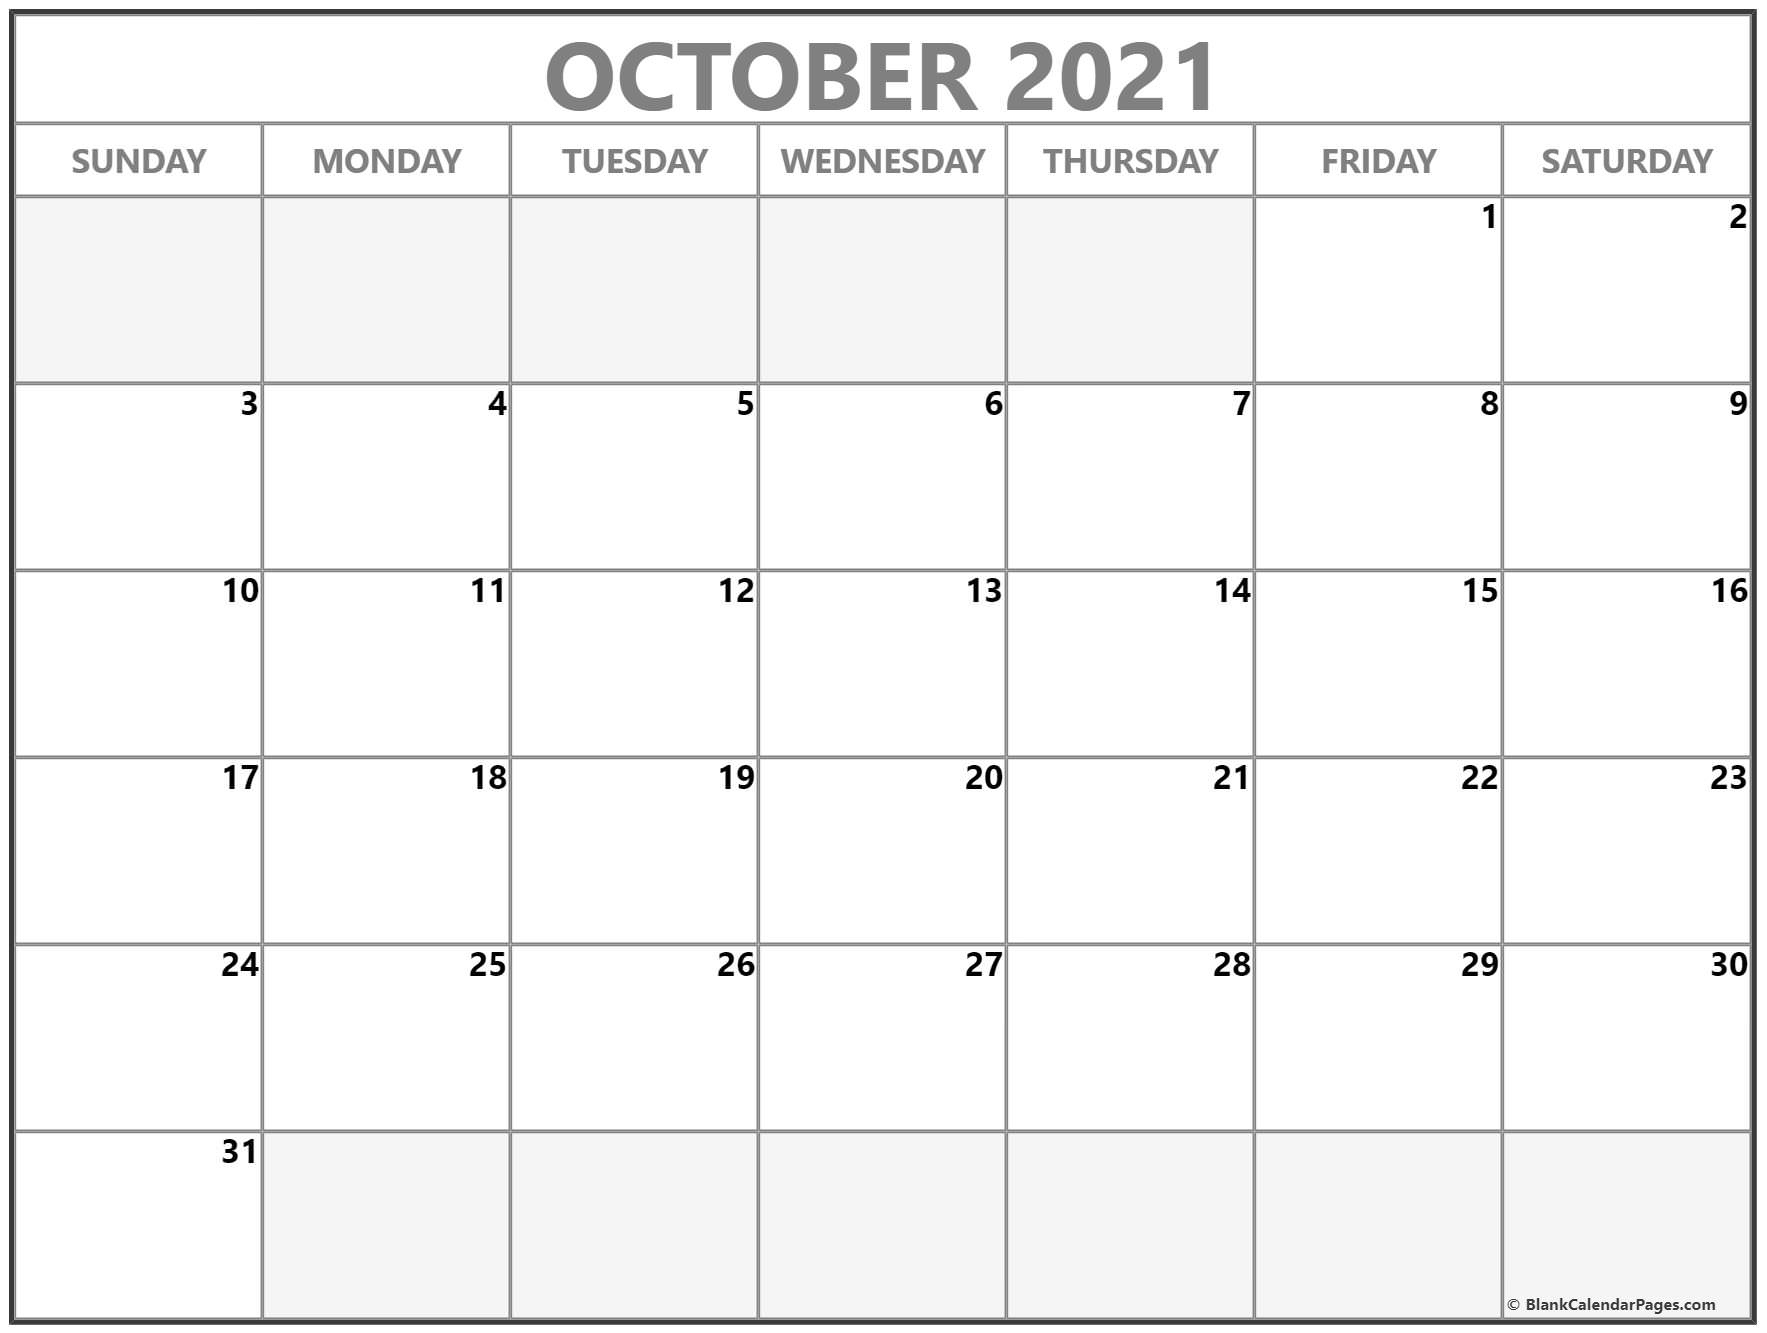 Printable Calendar October 2021 Free : 24+ October 2021 Quote Calendars - Doesn'T Get Easier October 2020 To January 2021 Calendar